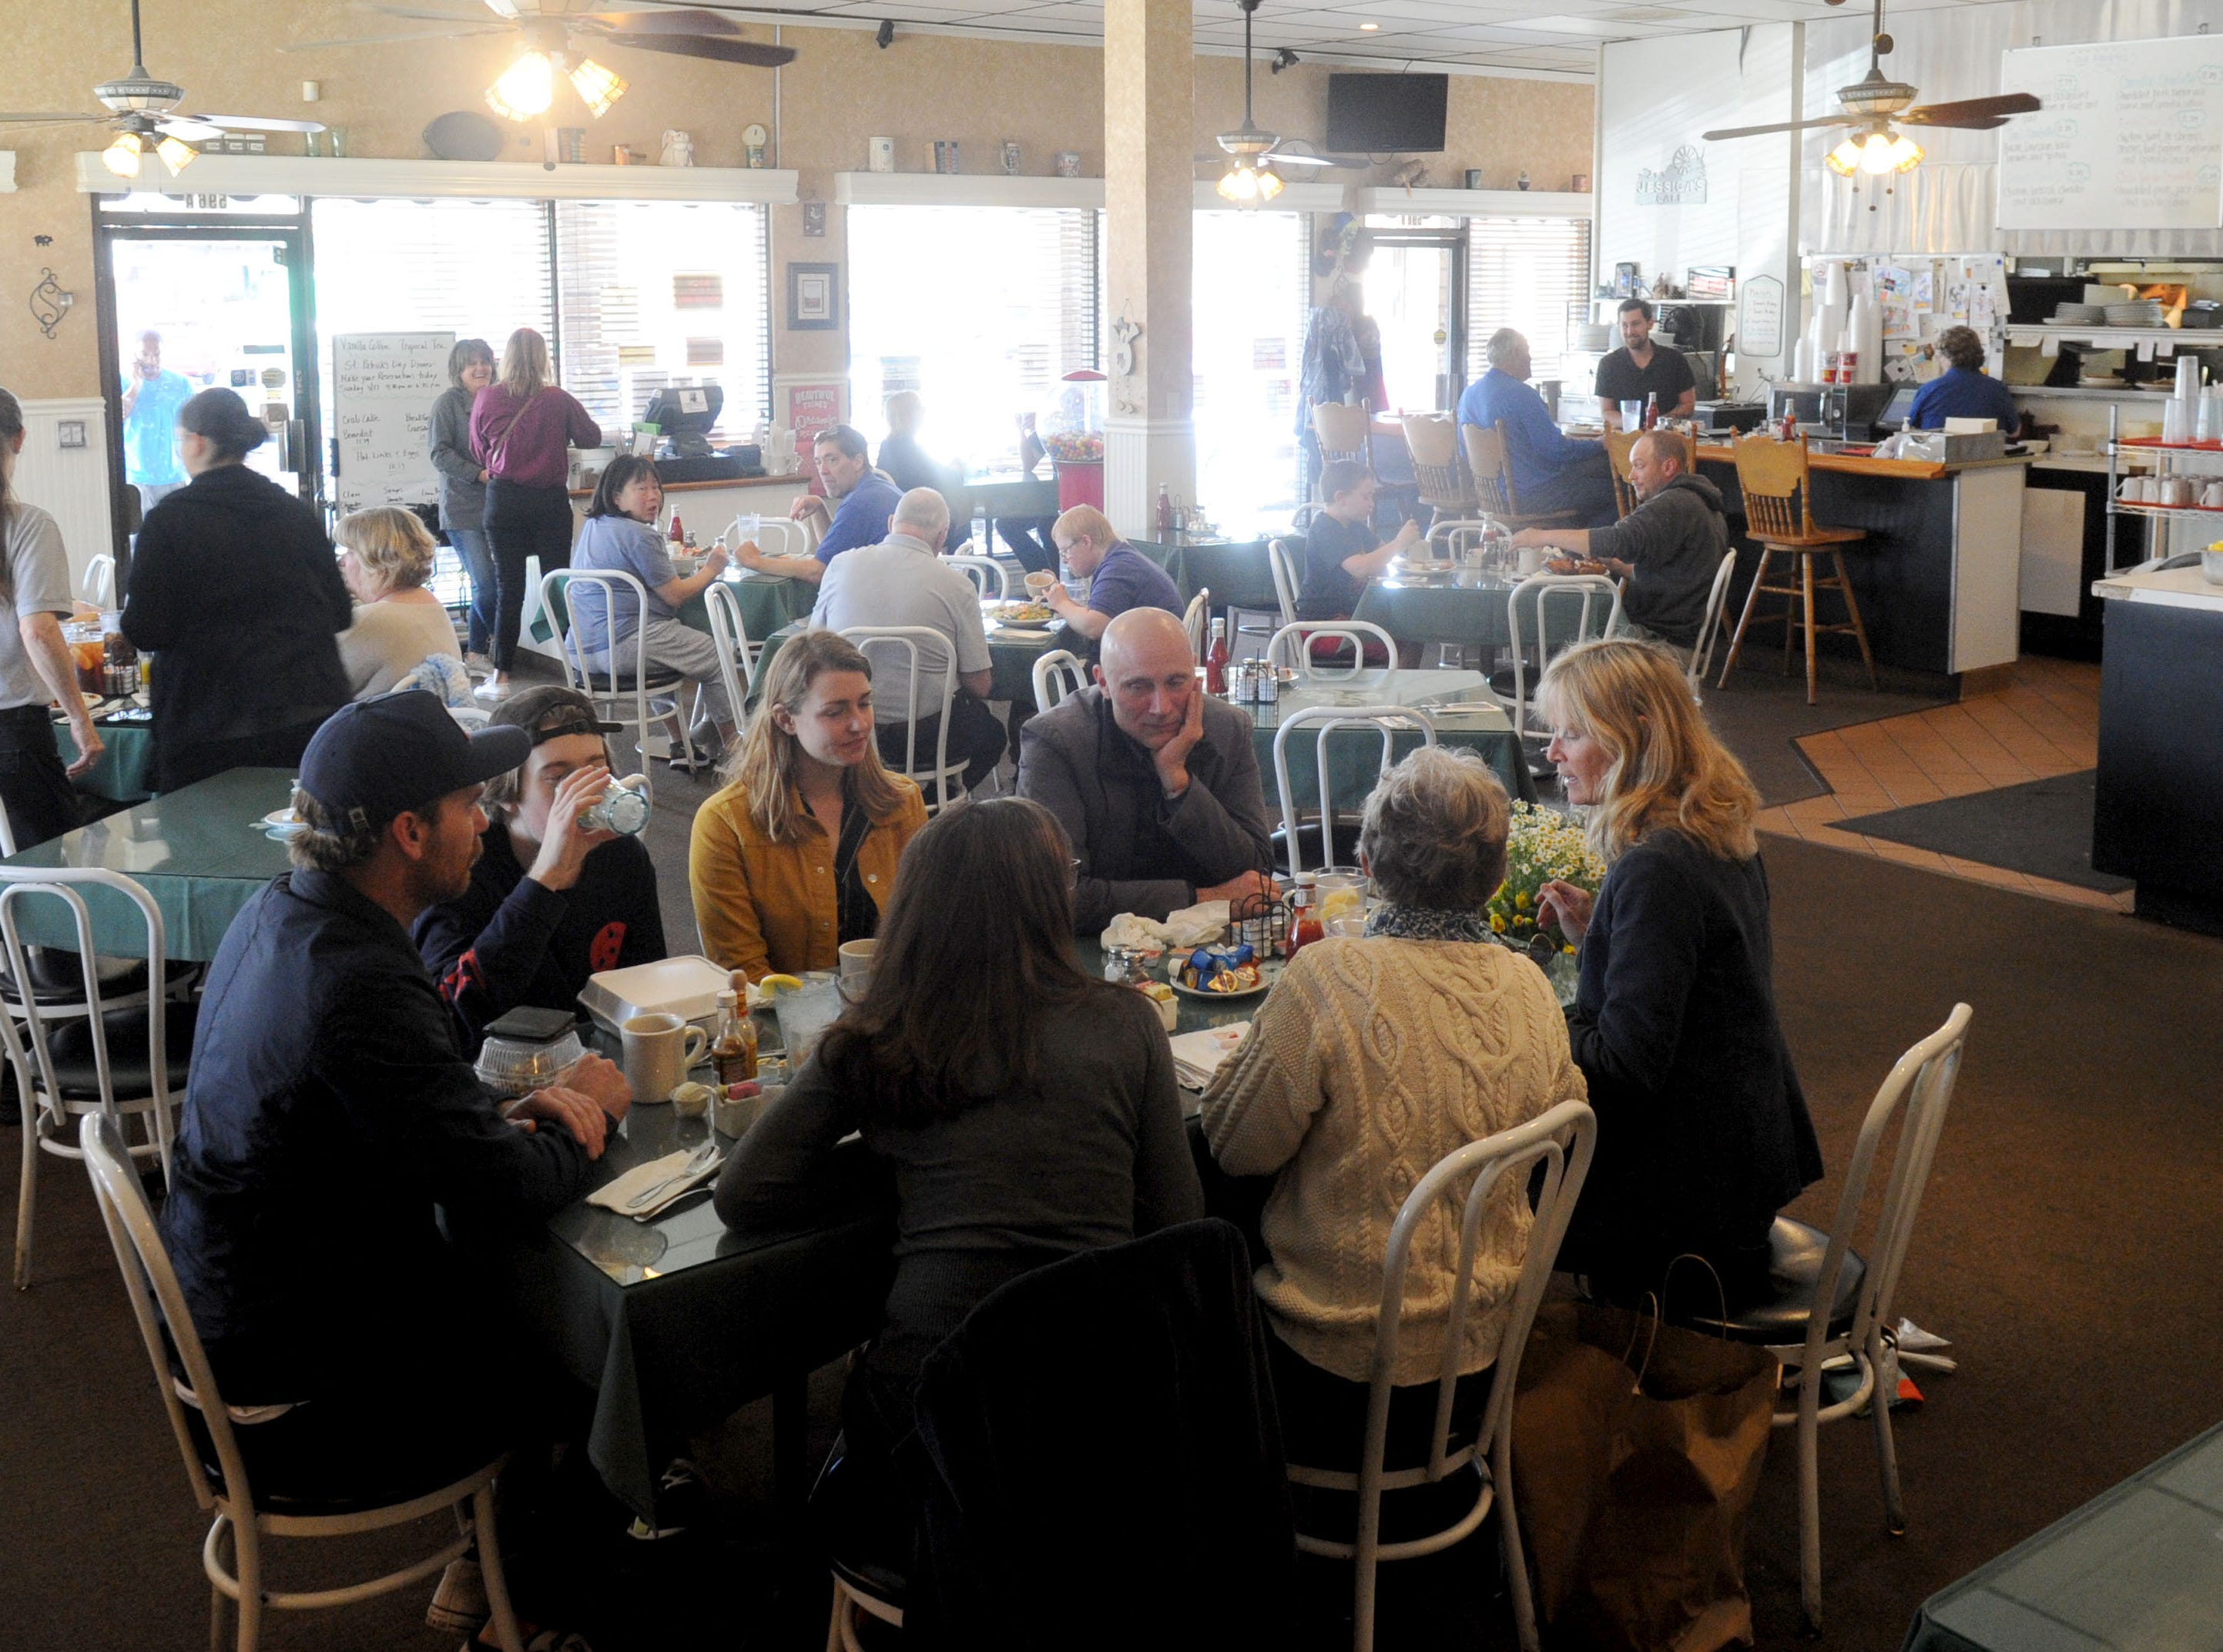 A large group of people gather for  breakfast at Jessica's Cafe in Camarillo.